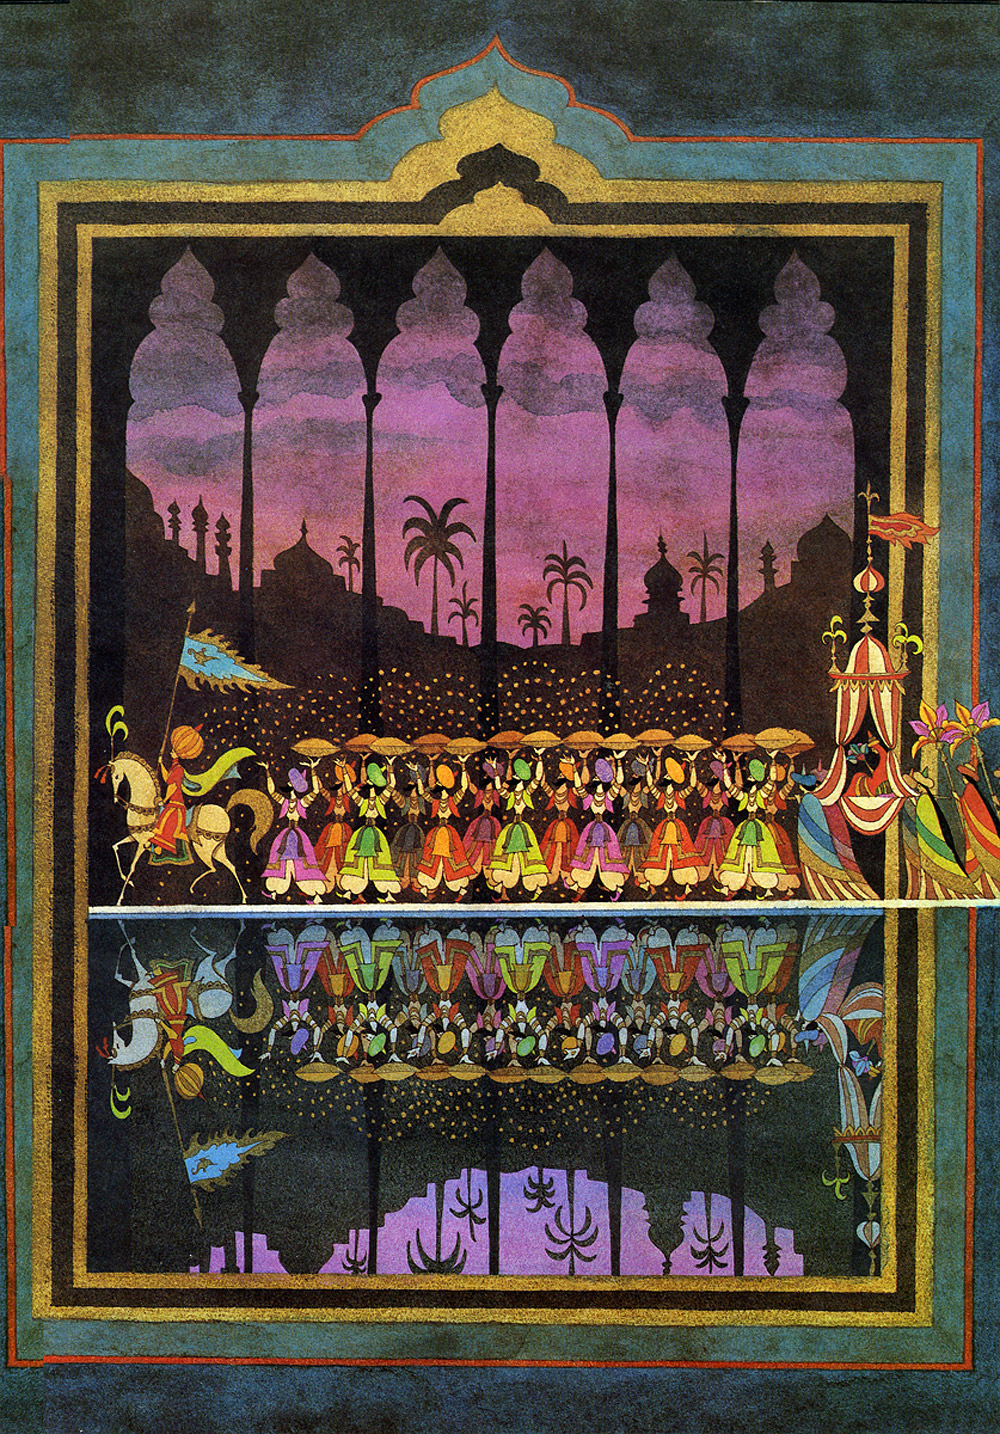 the arabian nights its influence on Essays and criticism on sir richard burton's the arabian nights - the   imaginative power, and the tales were deeply influential on their thinking and  work.